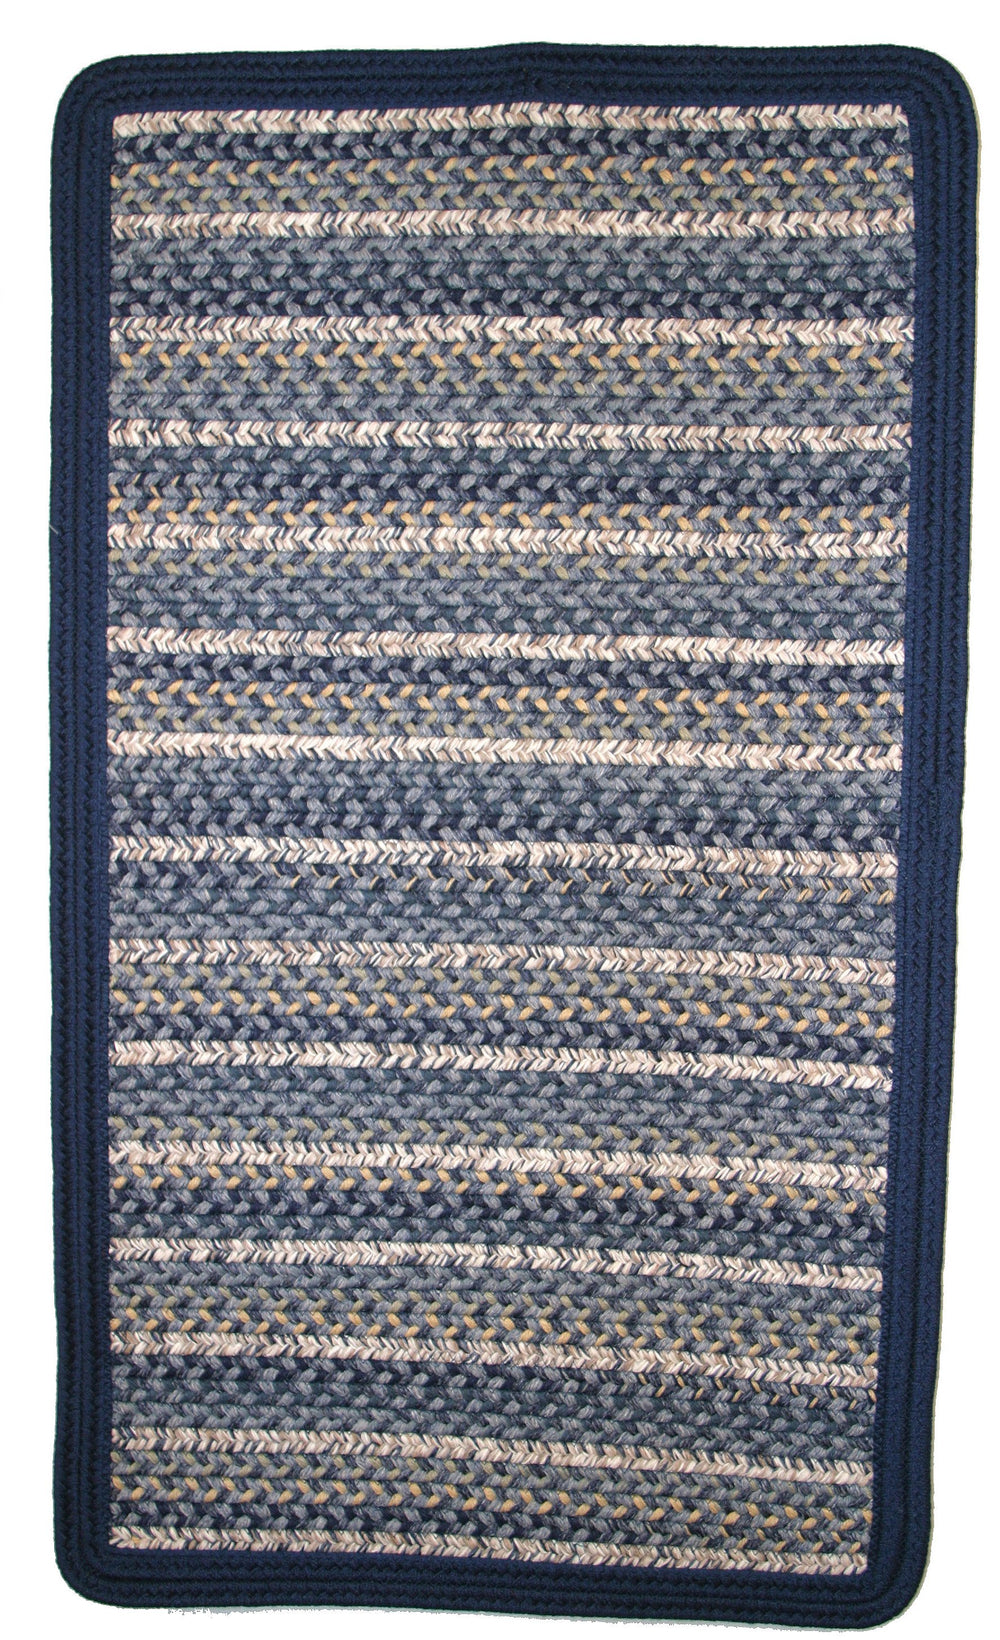 Thorndike Mills Beantown Charles River Blue Area Rug